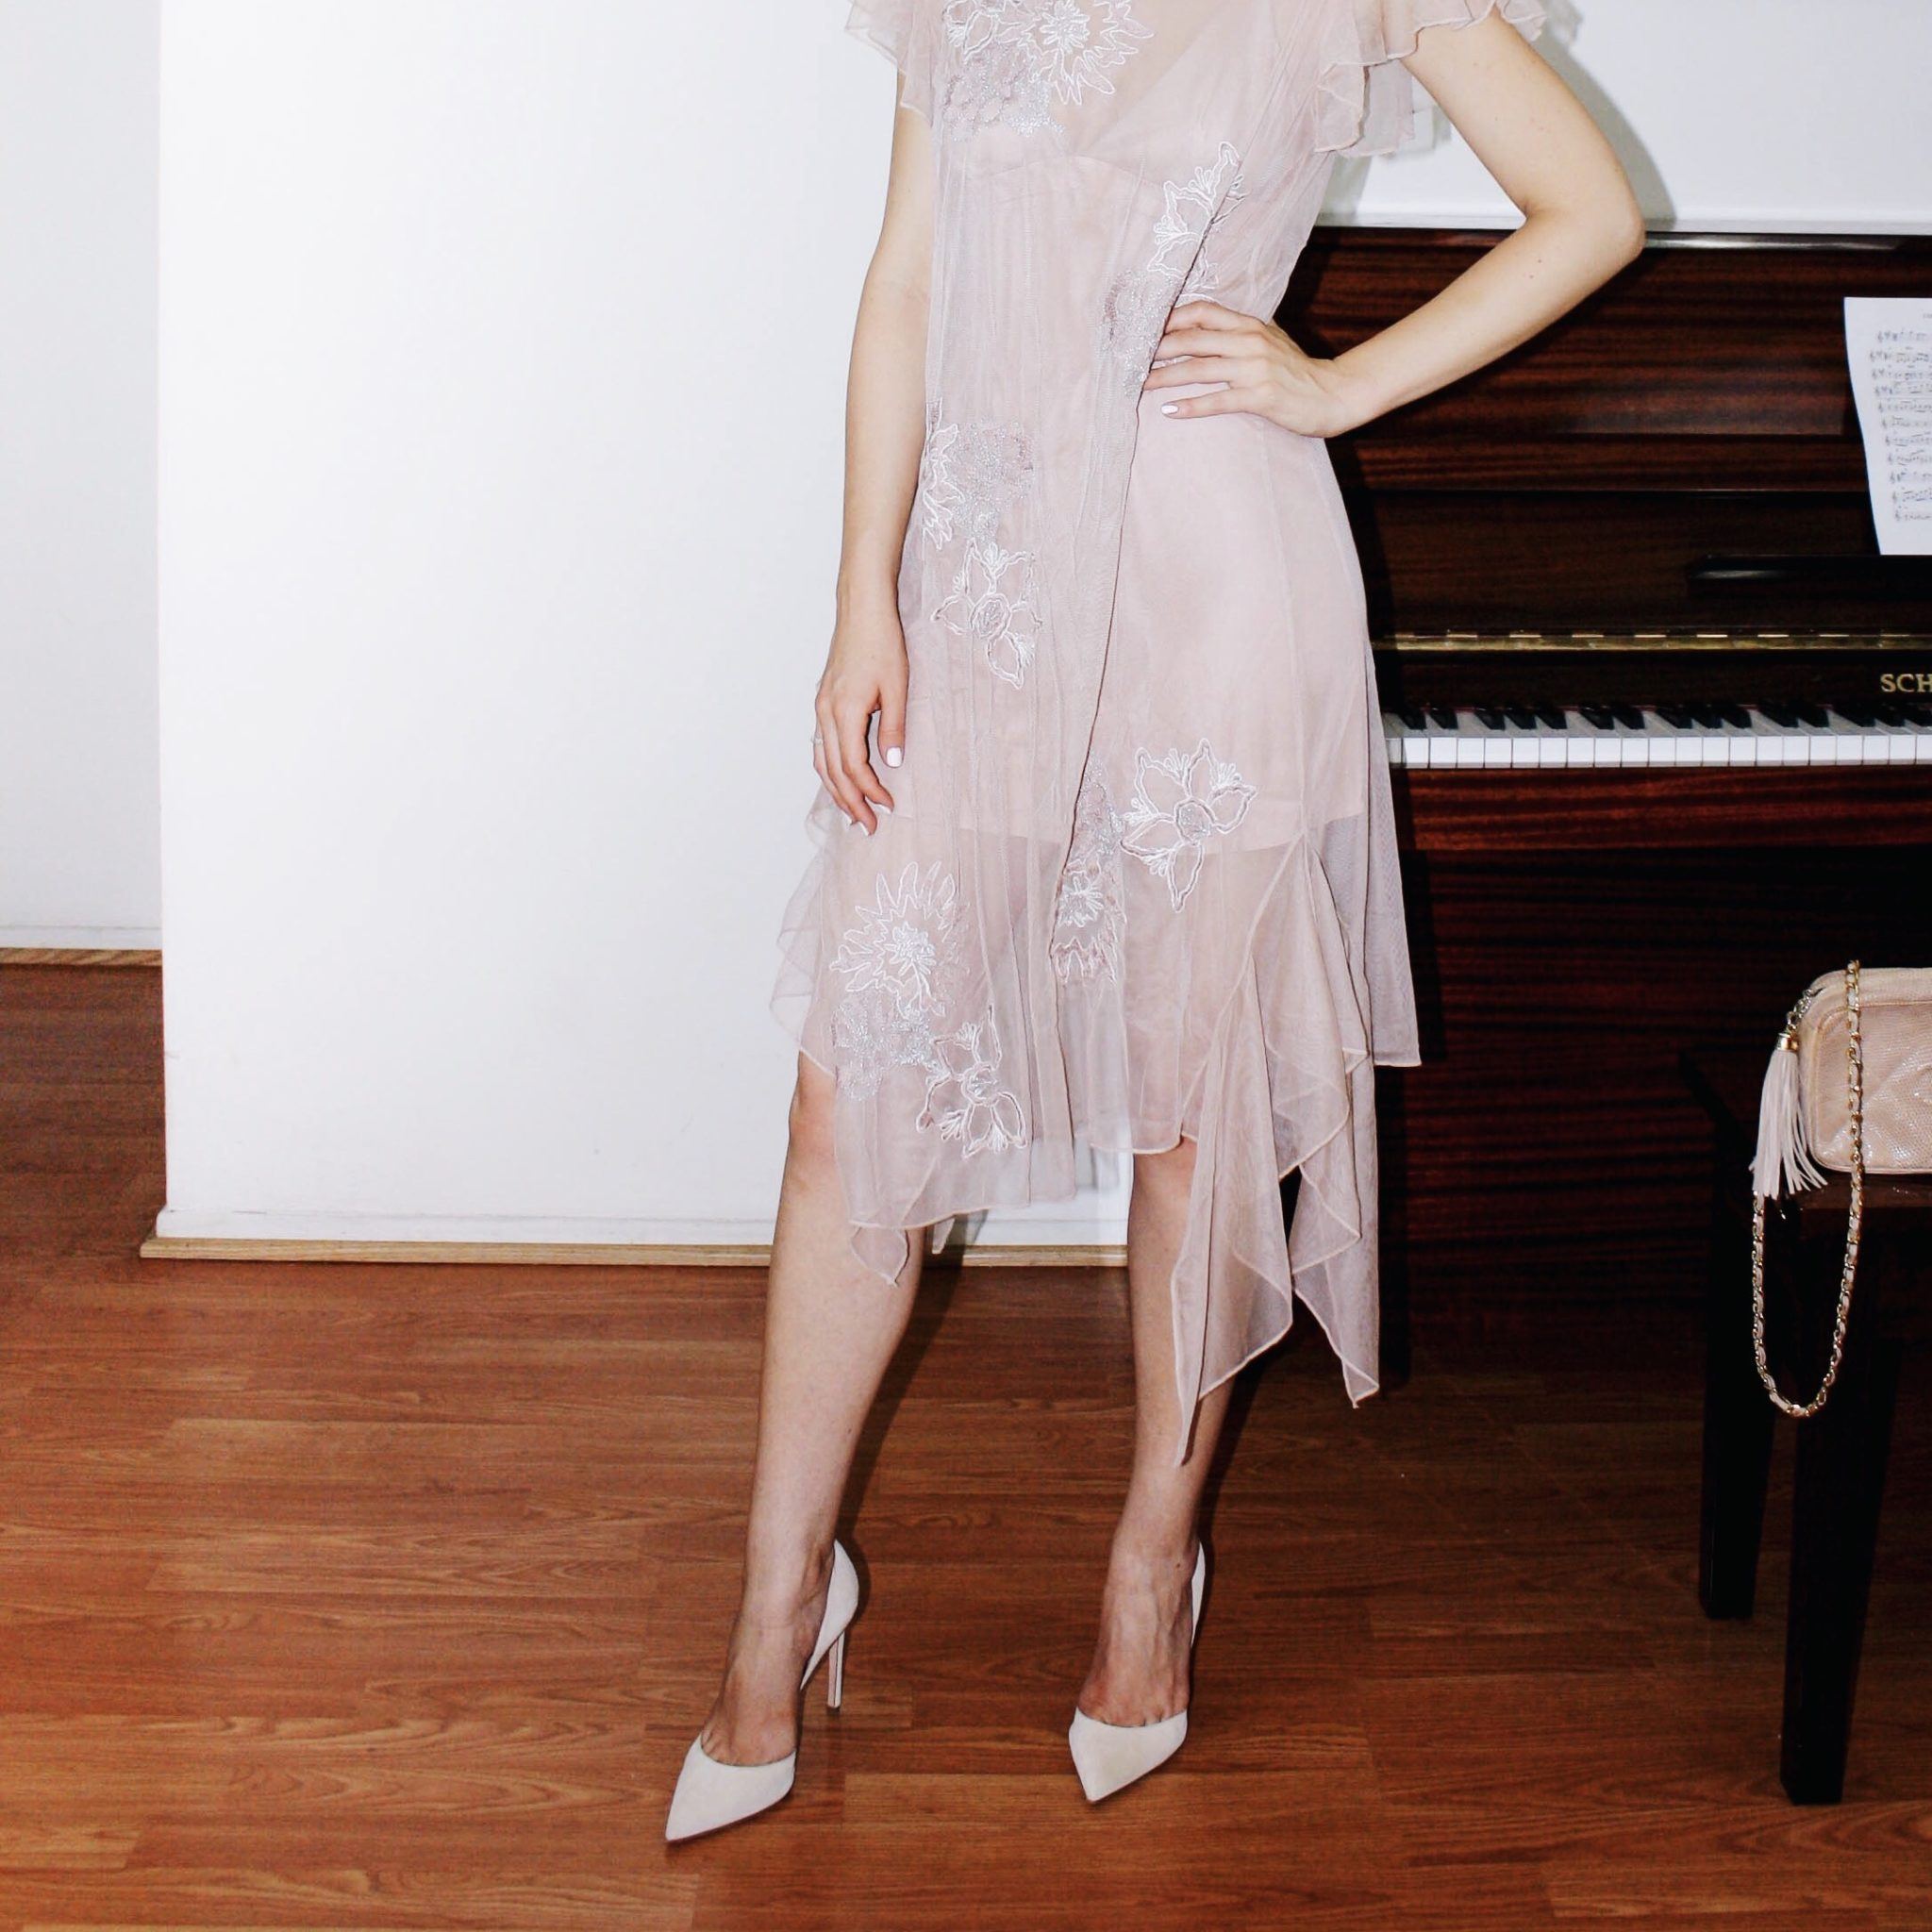 zara dress tulle naked dress embroidery chanel bag suede shoes giambattista valli 3